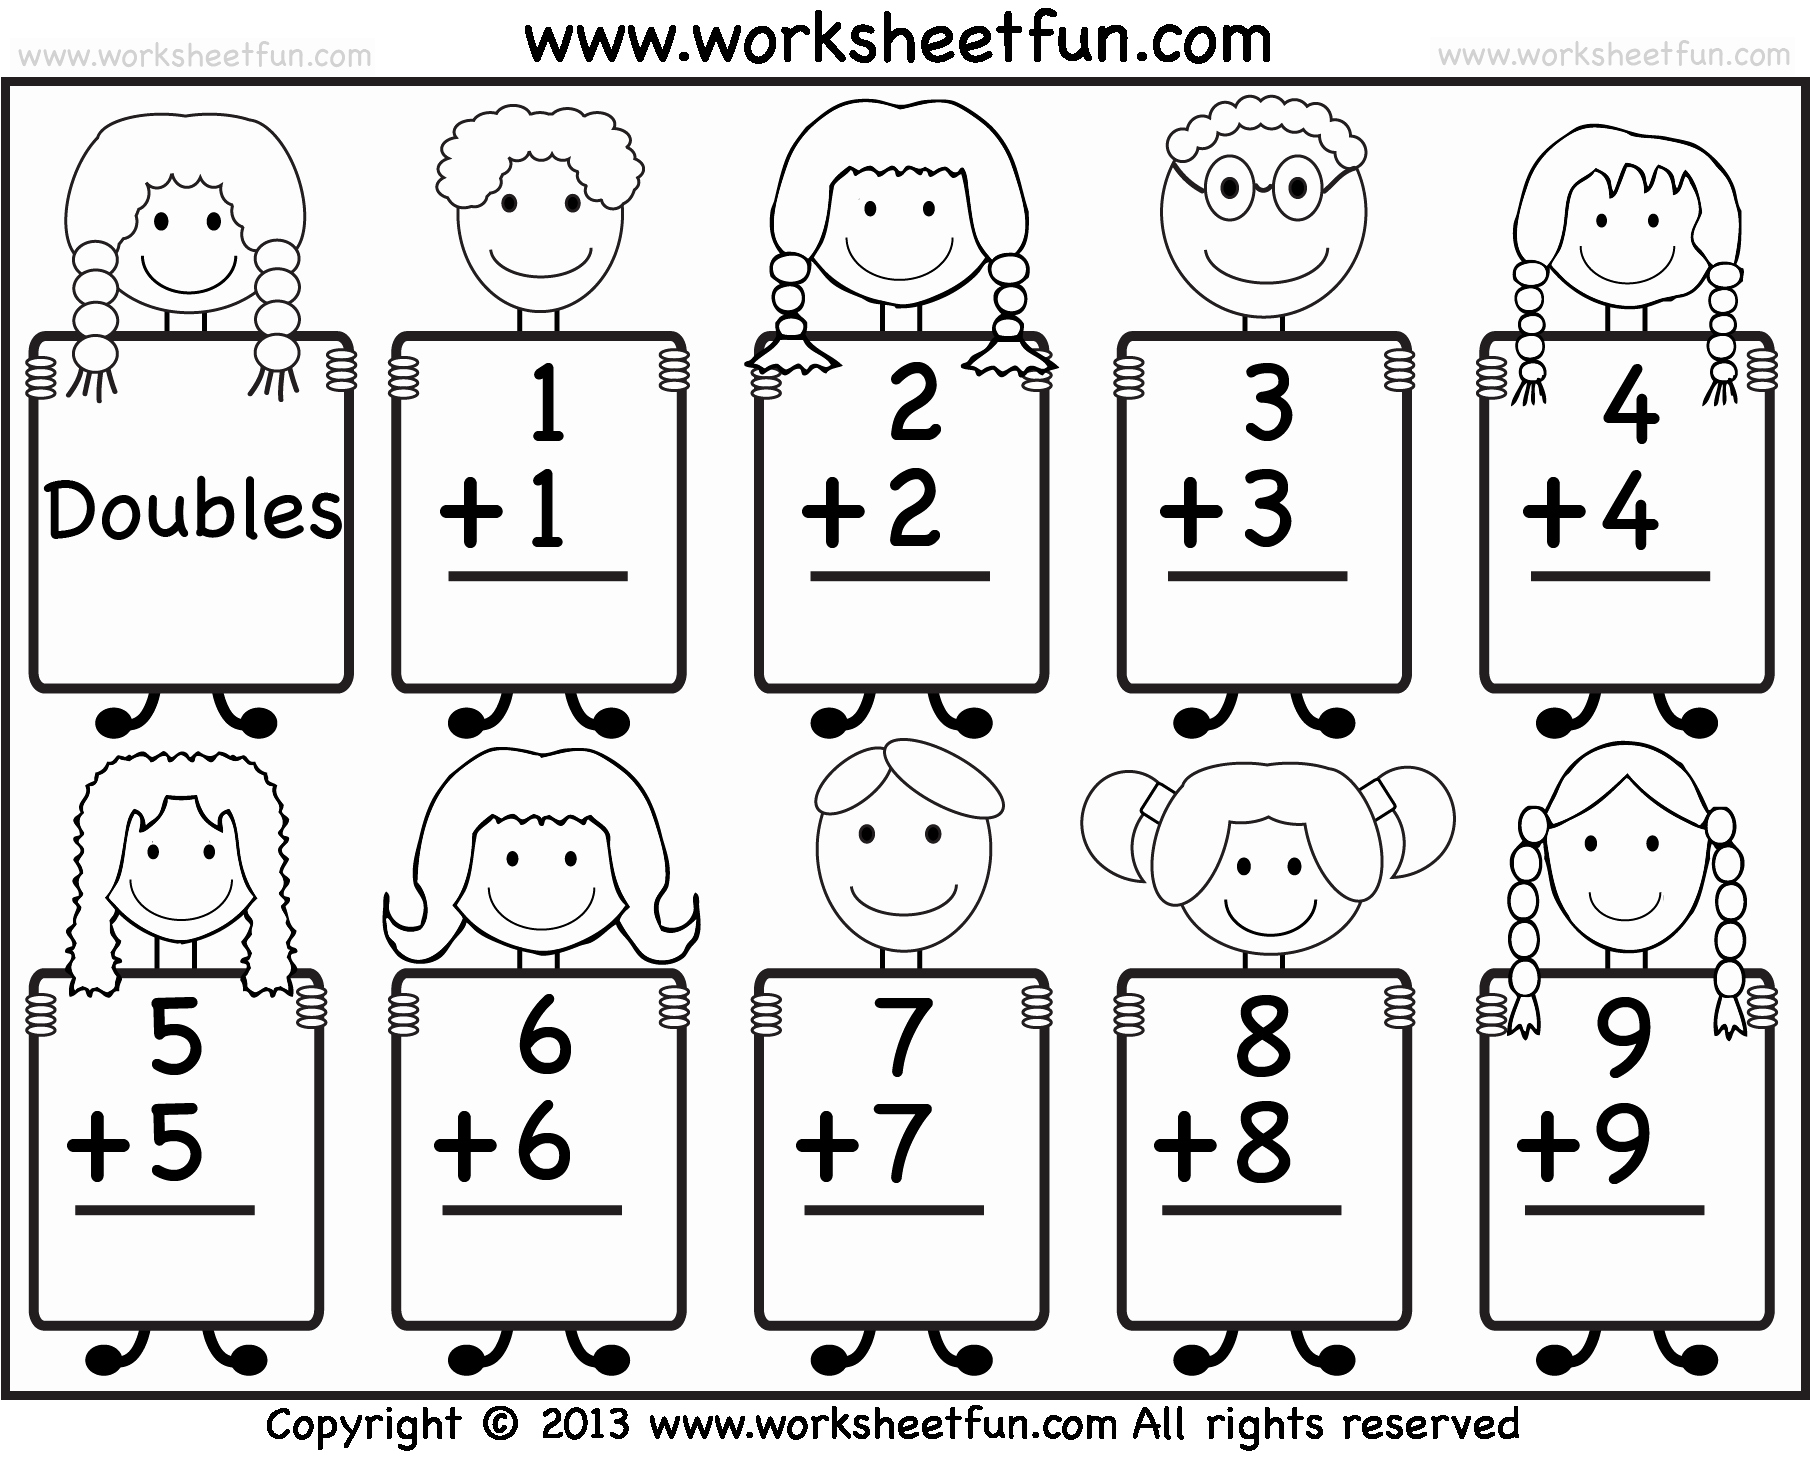 Doubles Math Facts Worksheet Elegant Addition Doubles Facts – Beginner Addition Worksheet